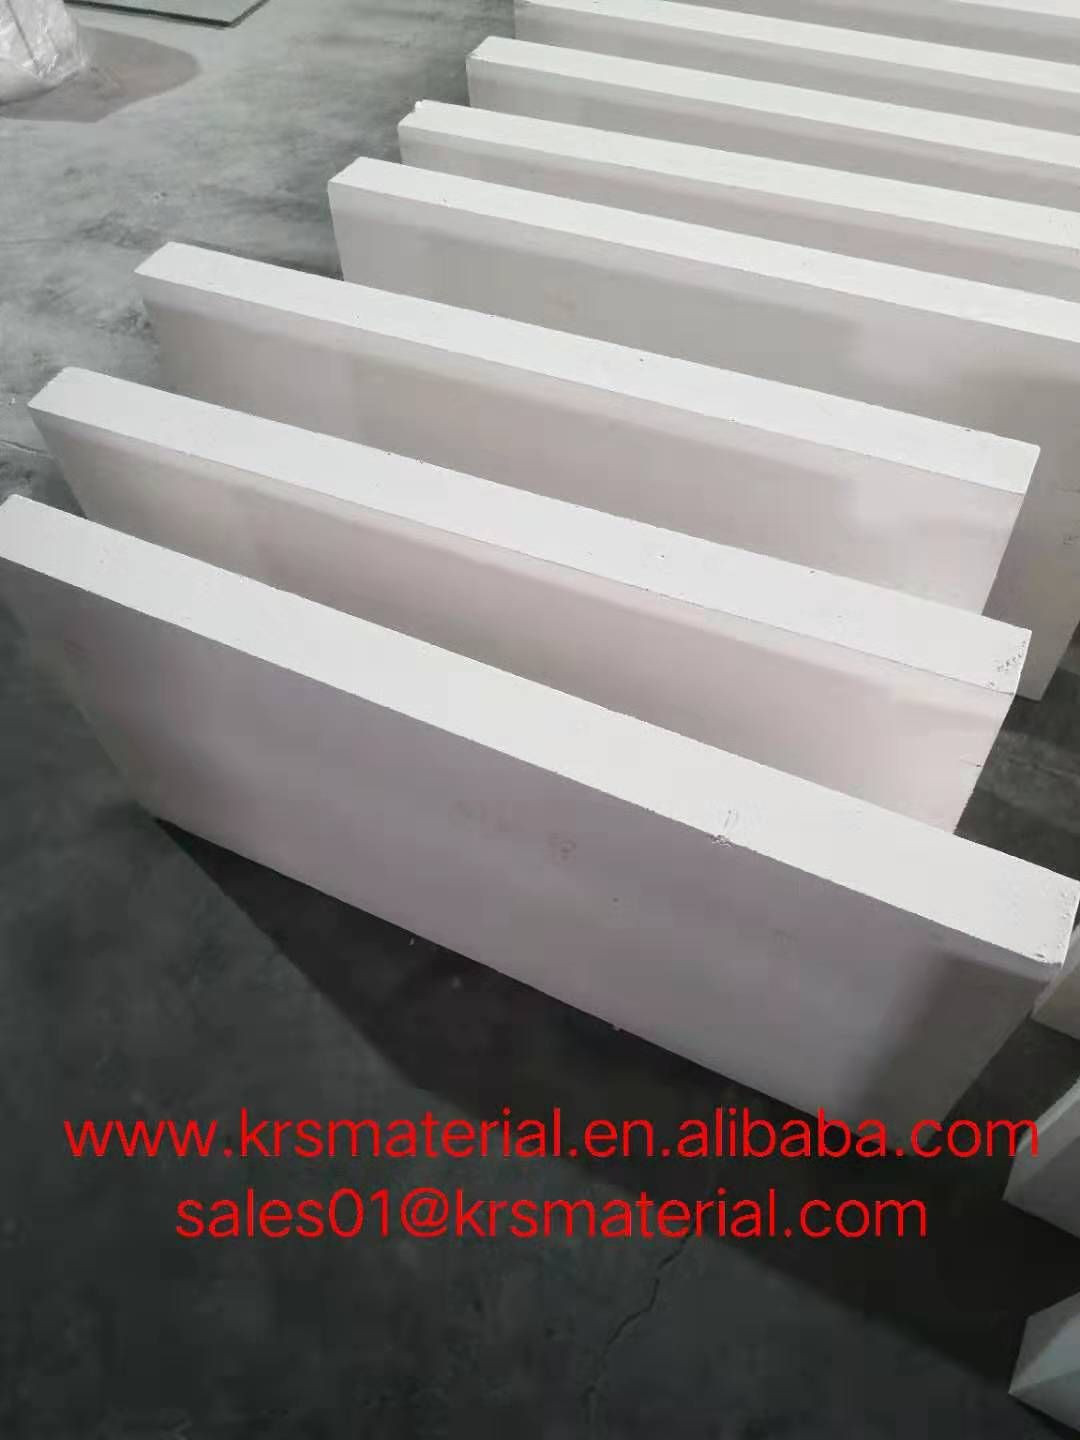 6mm price 100%non-asbestos calcium silicate board